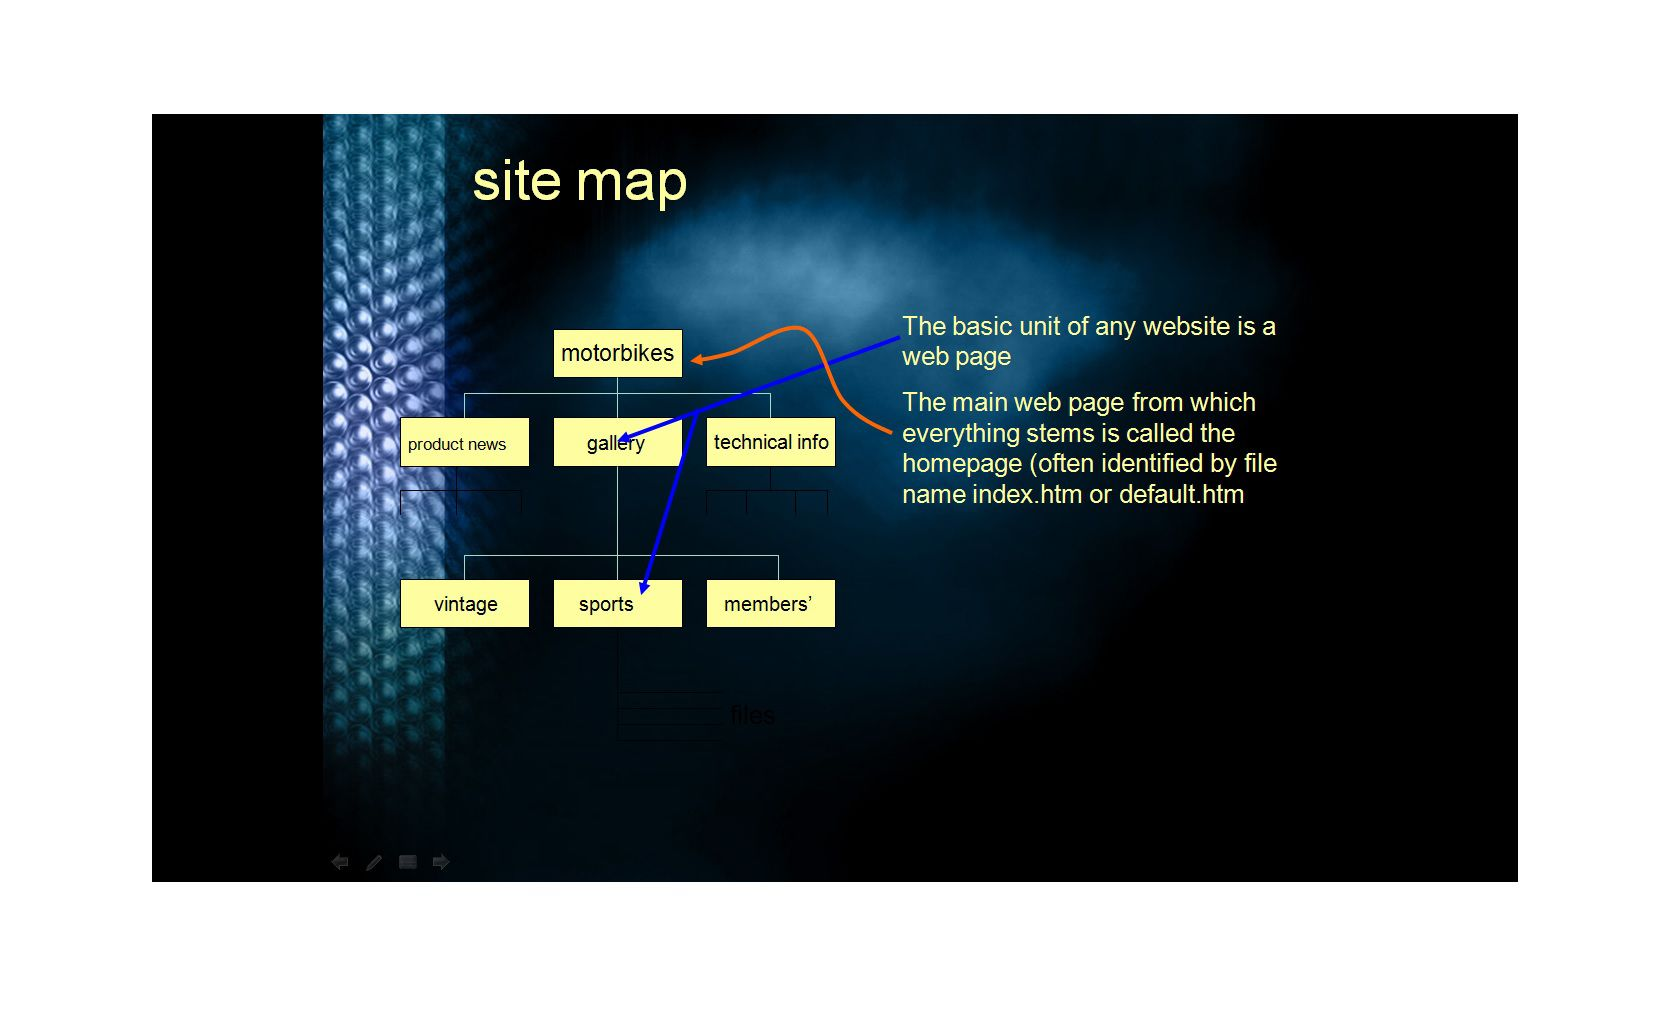 007 Stirring Website Site Map Template Highest Quality Full